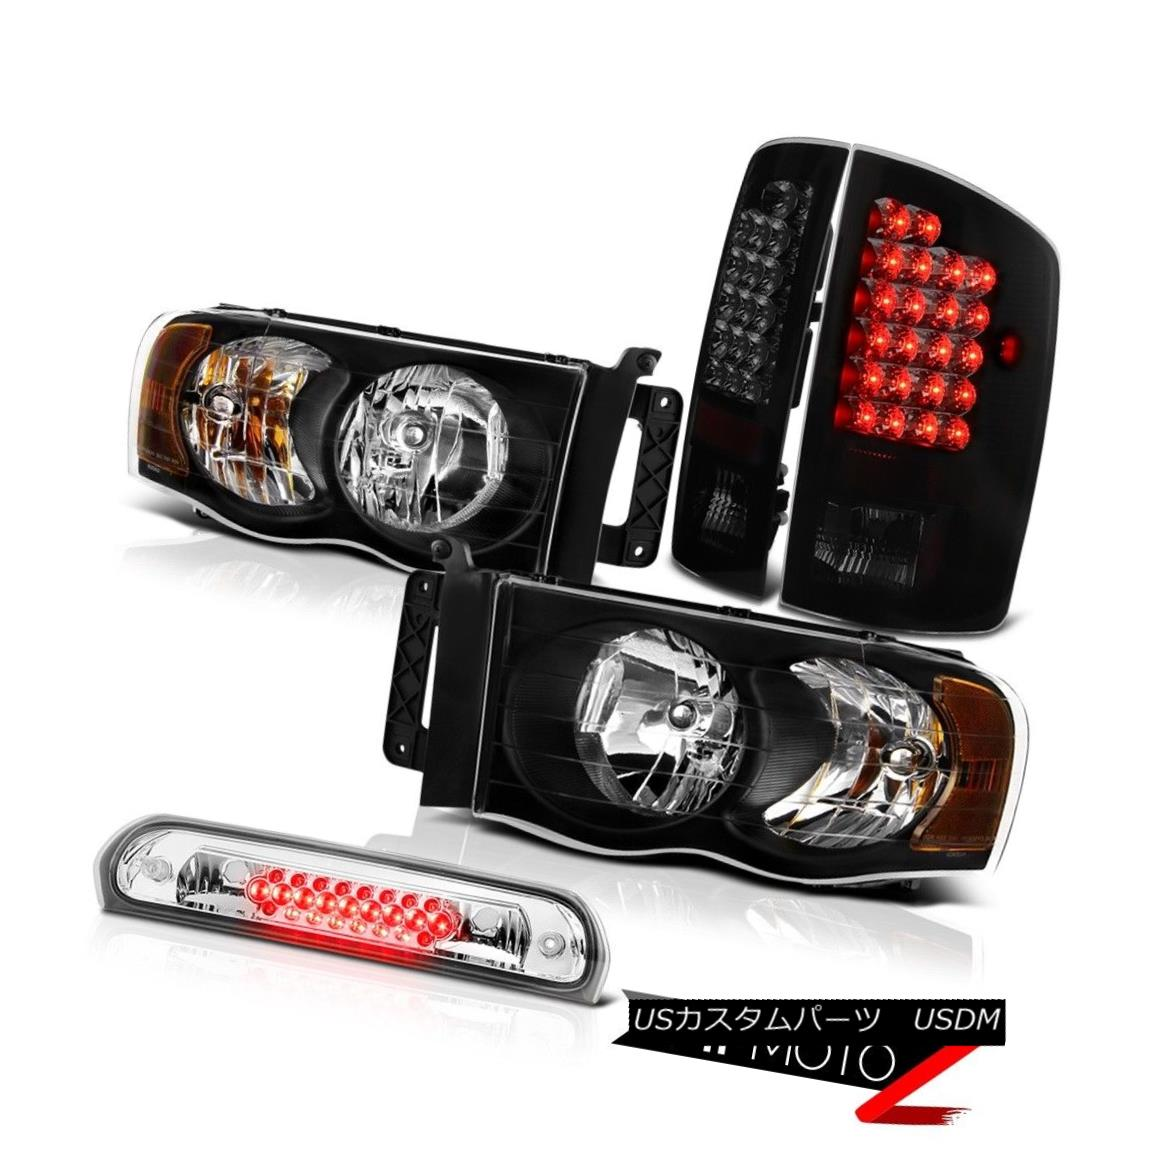 テールライト Jet Black Headlights Bright LED Taillamps Chrome 3rd Brake 02-05 Ram TurboDiesel ジェットブラックヘッドライト明るいLEDタイルランプChrome 3rd Brake 02-05 Ram TurboDiesel